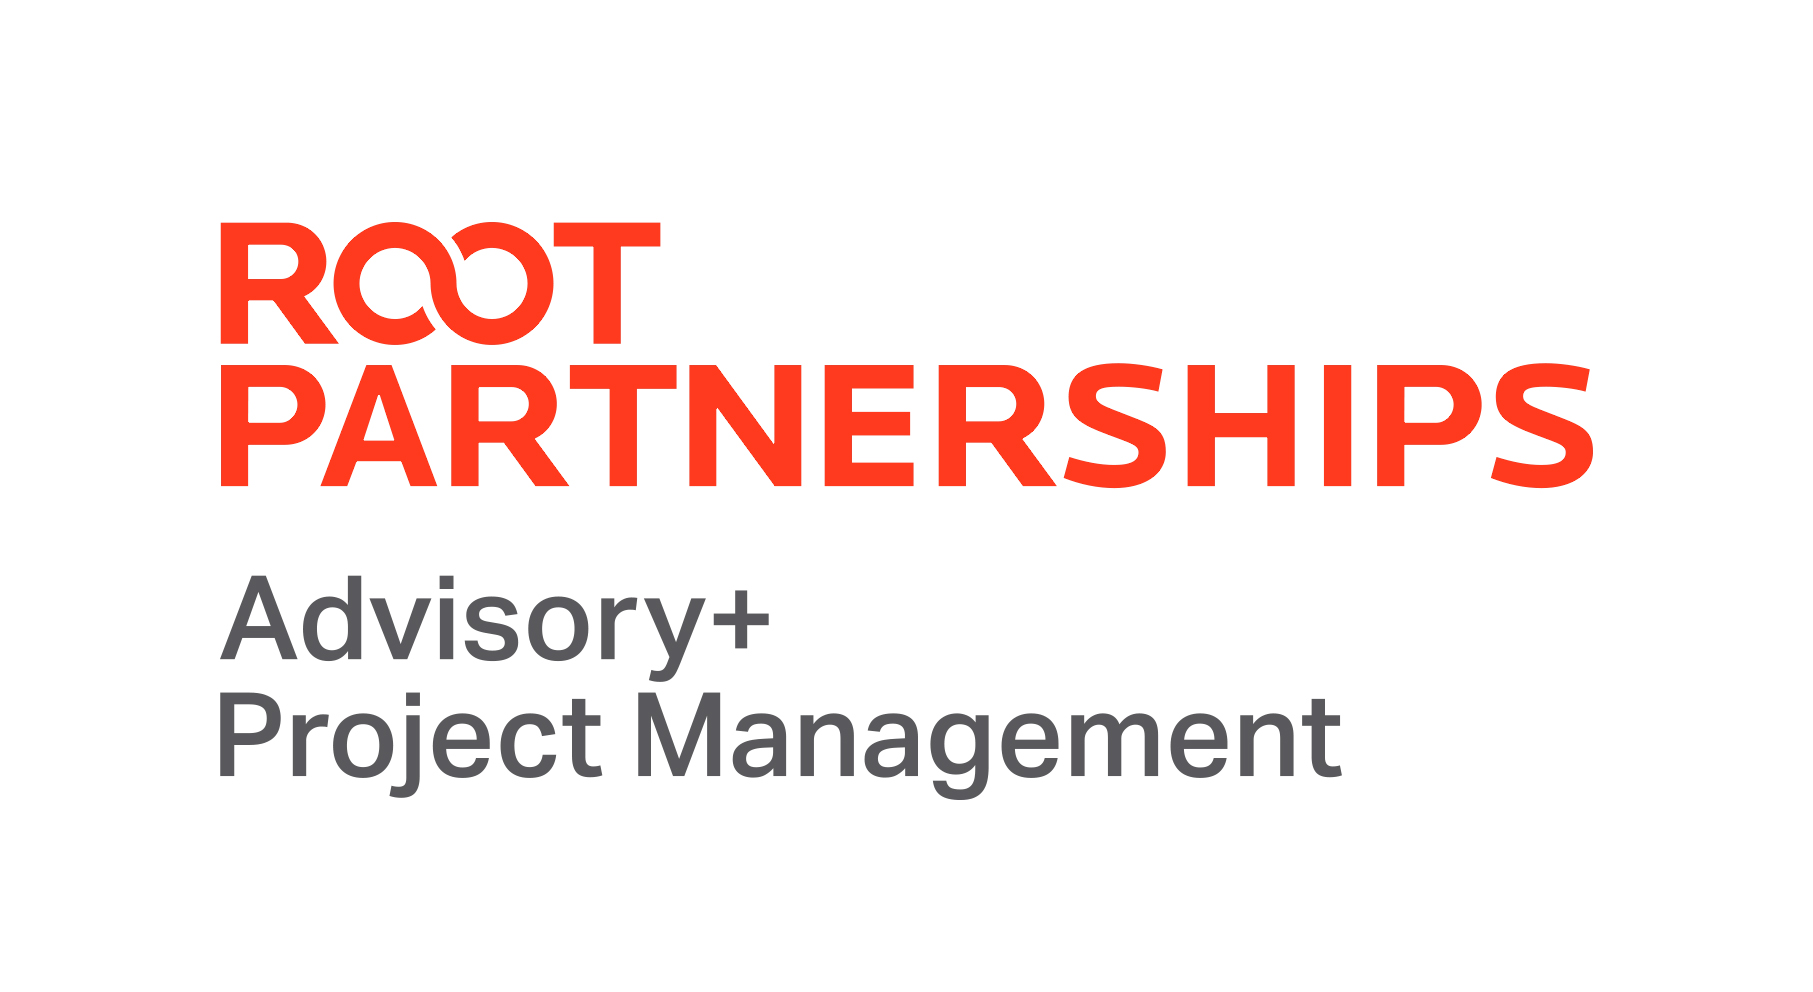 Root Partnerships Pty Ltd